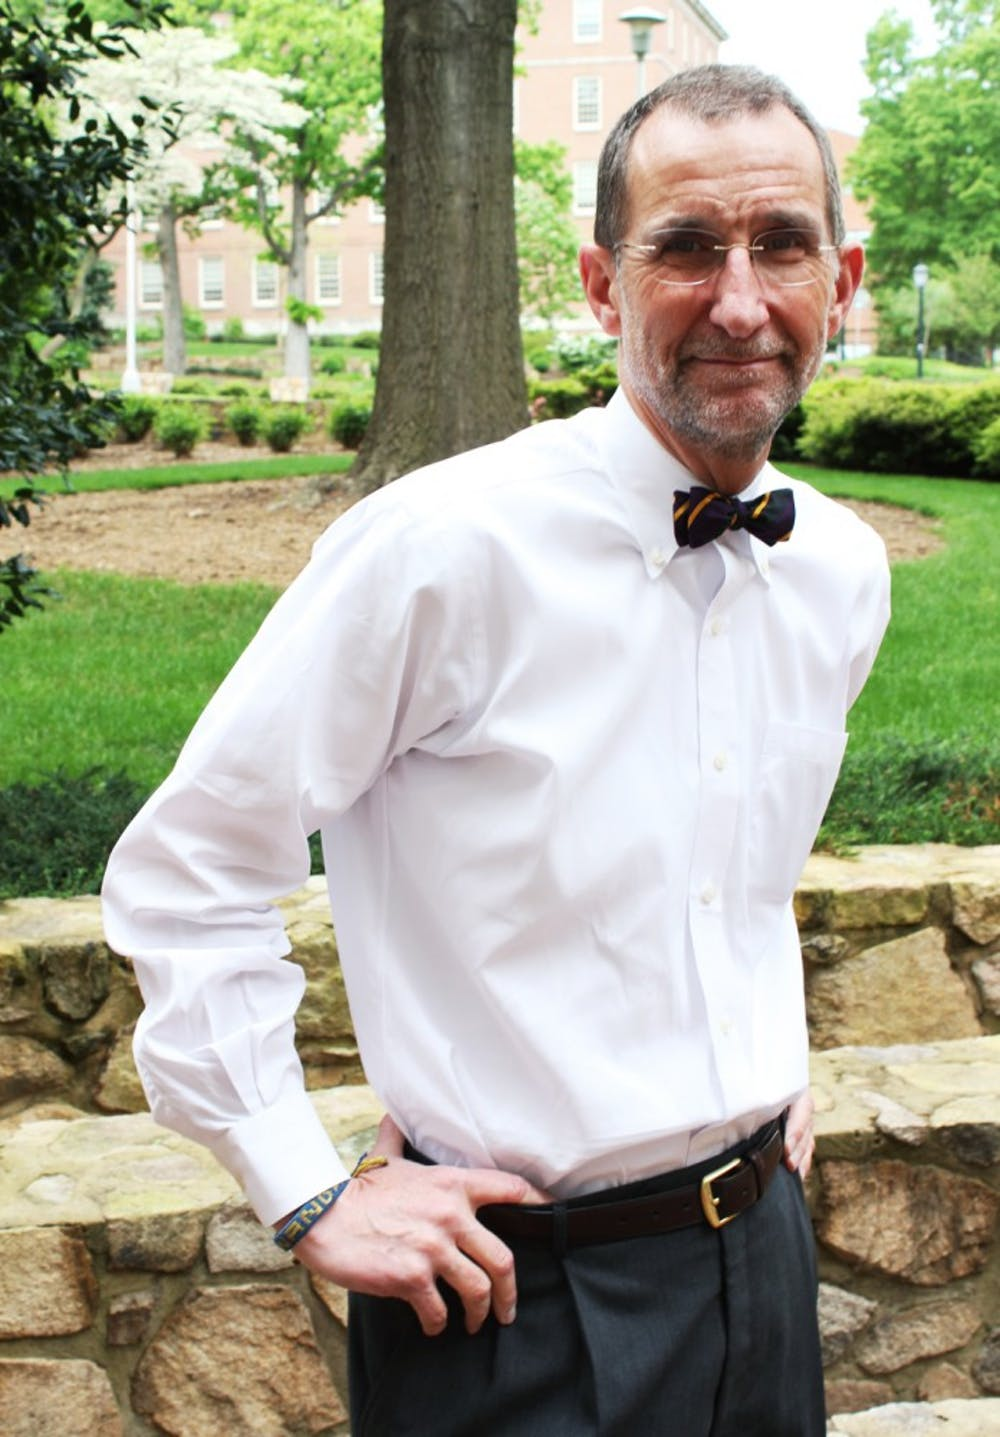 Taking care of health: Bill Roper looks to prevent sweeping changes to UNC Health Care